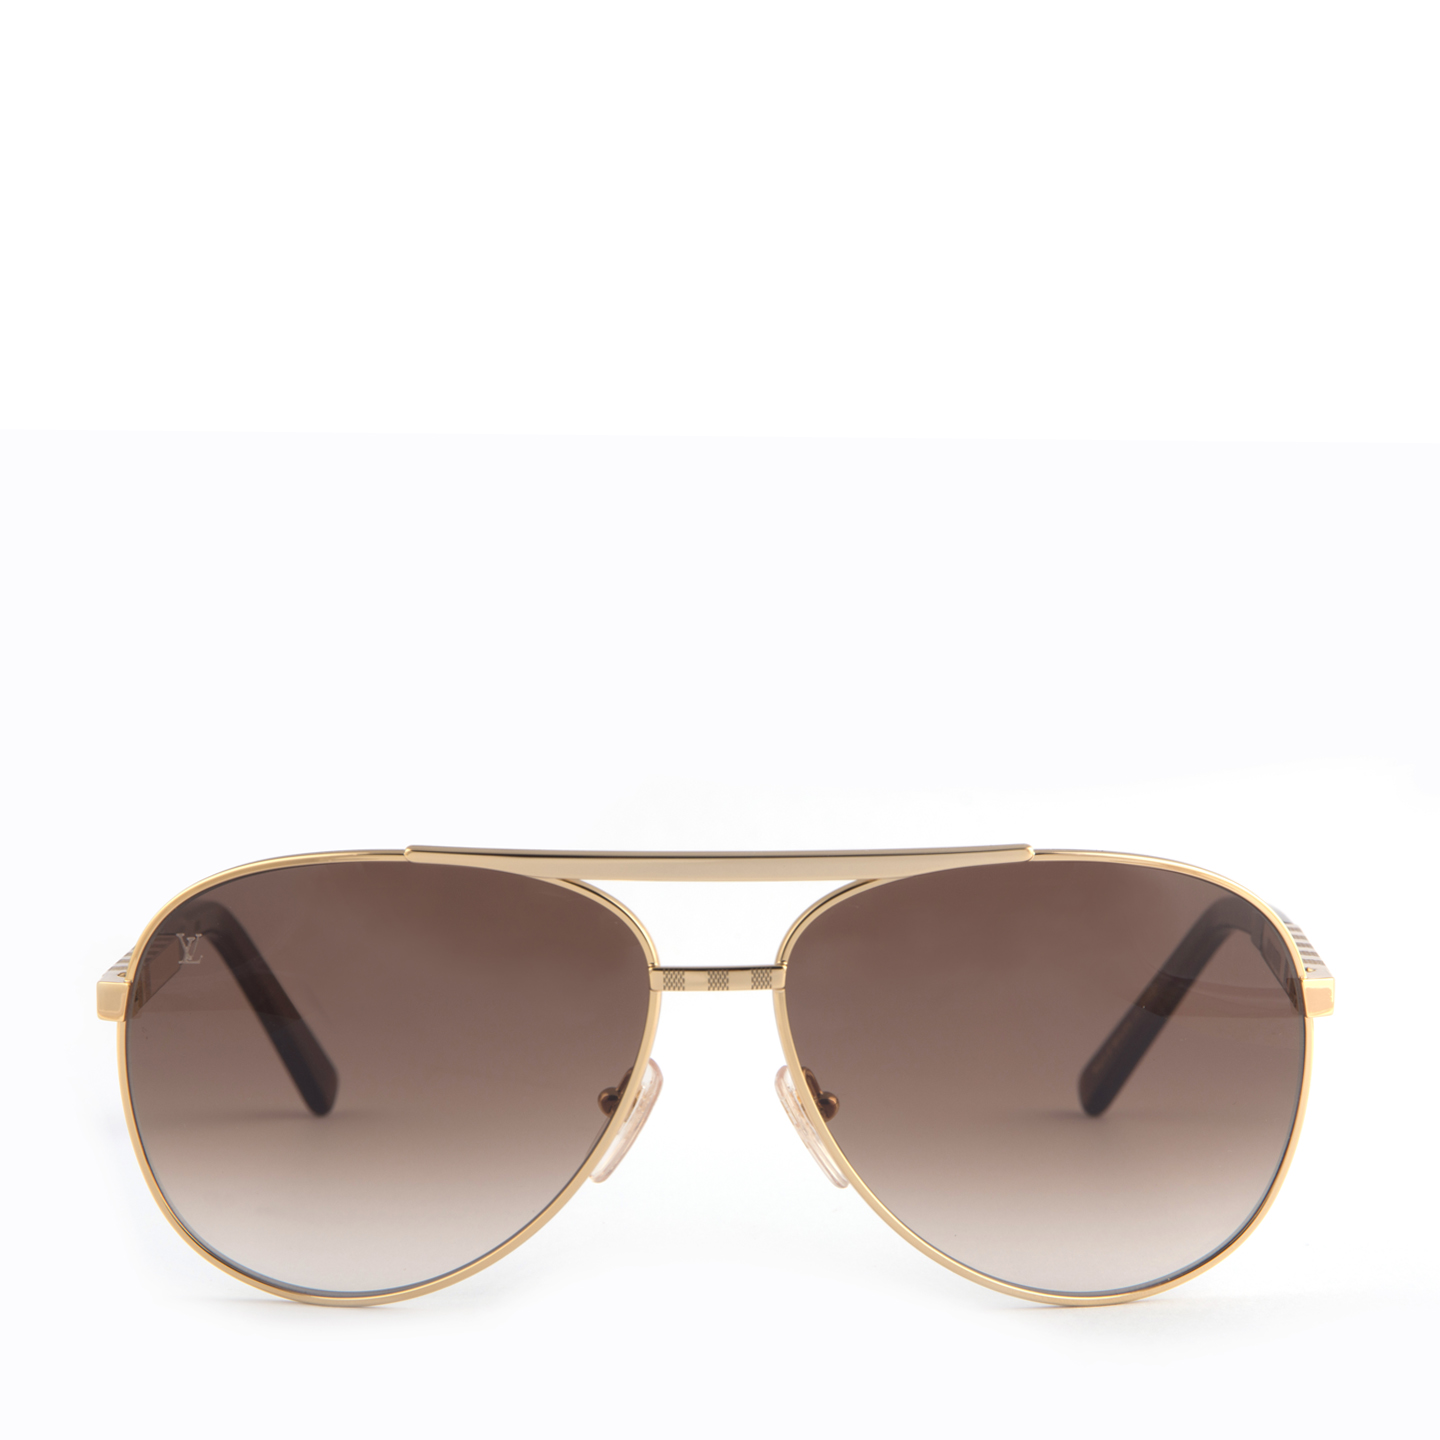 443d90bc20 Louis Vuitton Attitude Pilote Sunglasses Z0339U Gold - LabelCentric